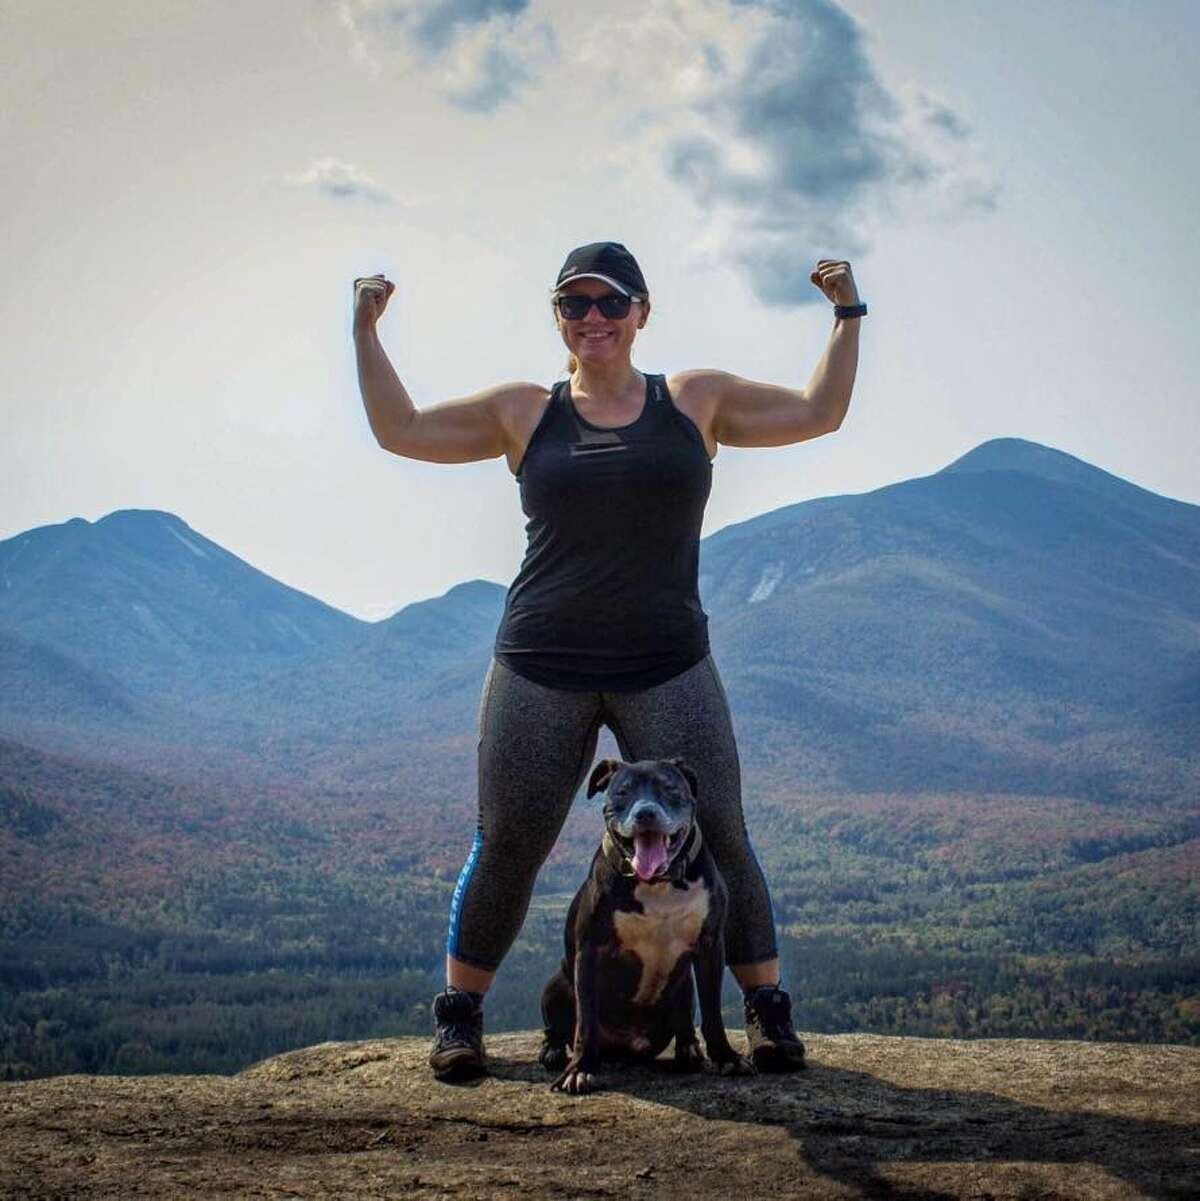 Alicia Boughton, of Rotterdam, at the top of Mt. Van Hoevenberg in the Adirondacks with her dog, Spartacus, in 2017.